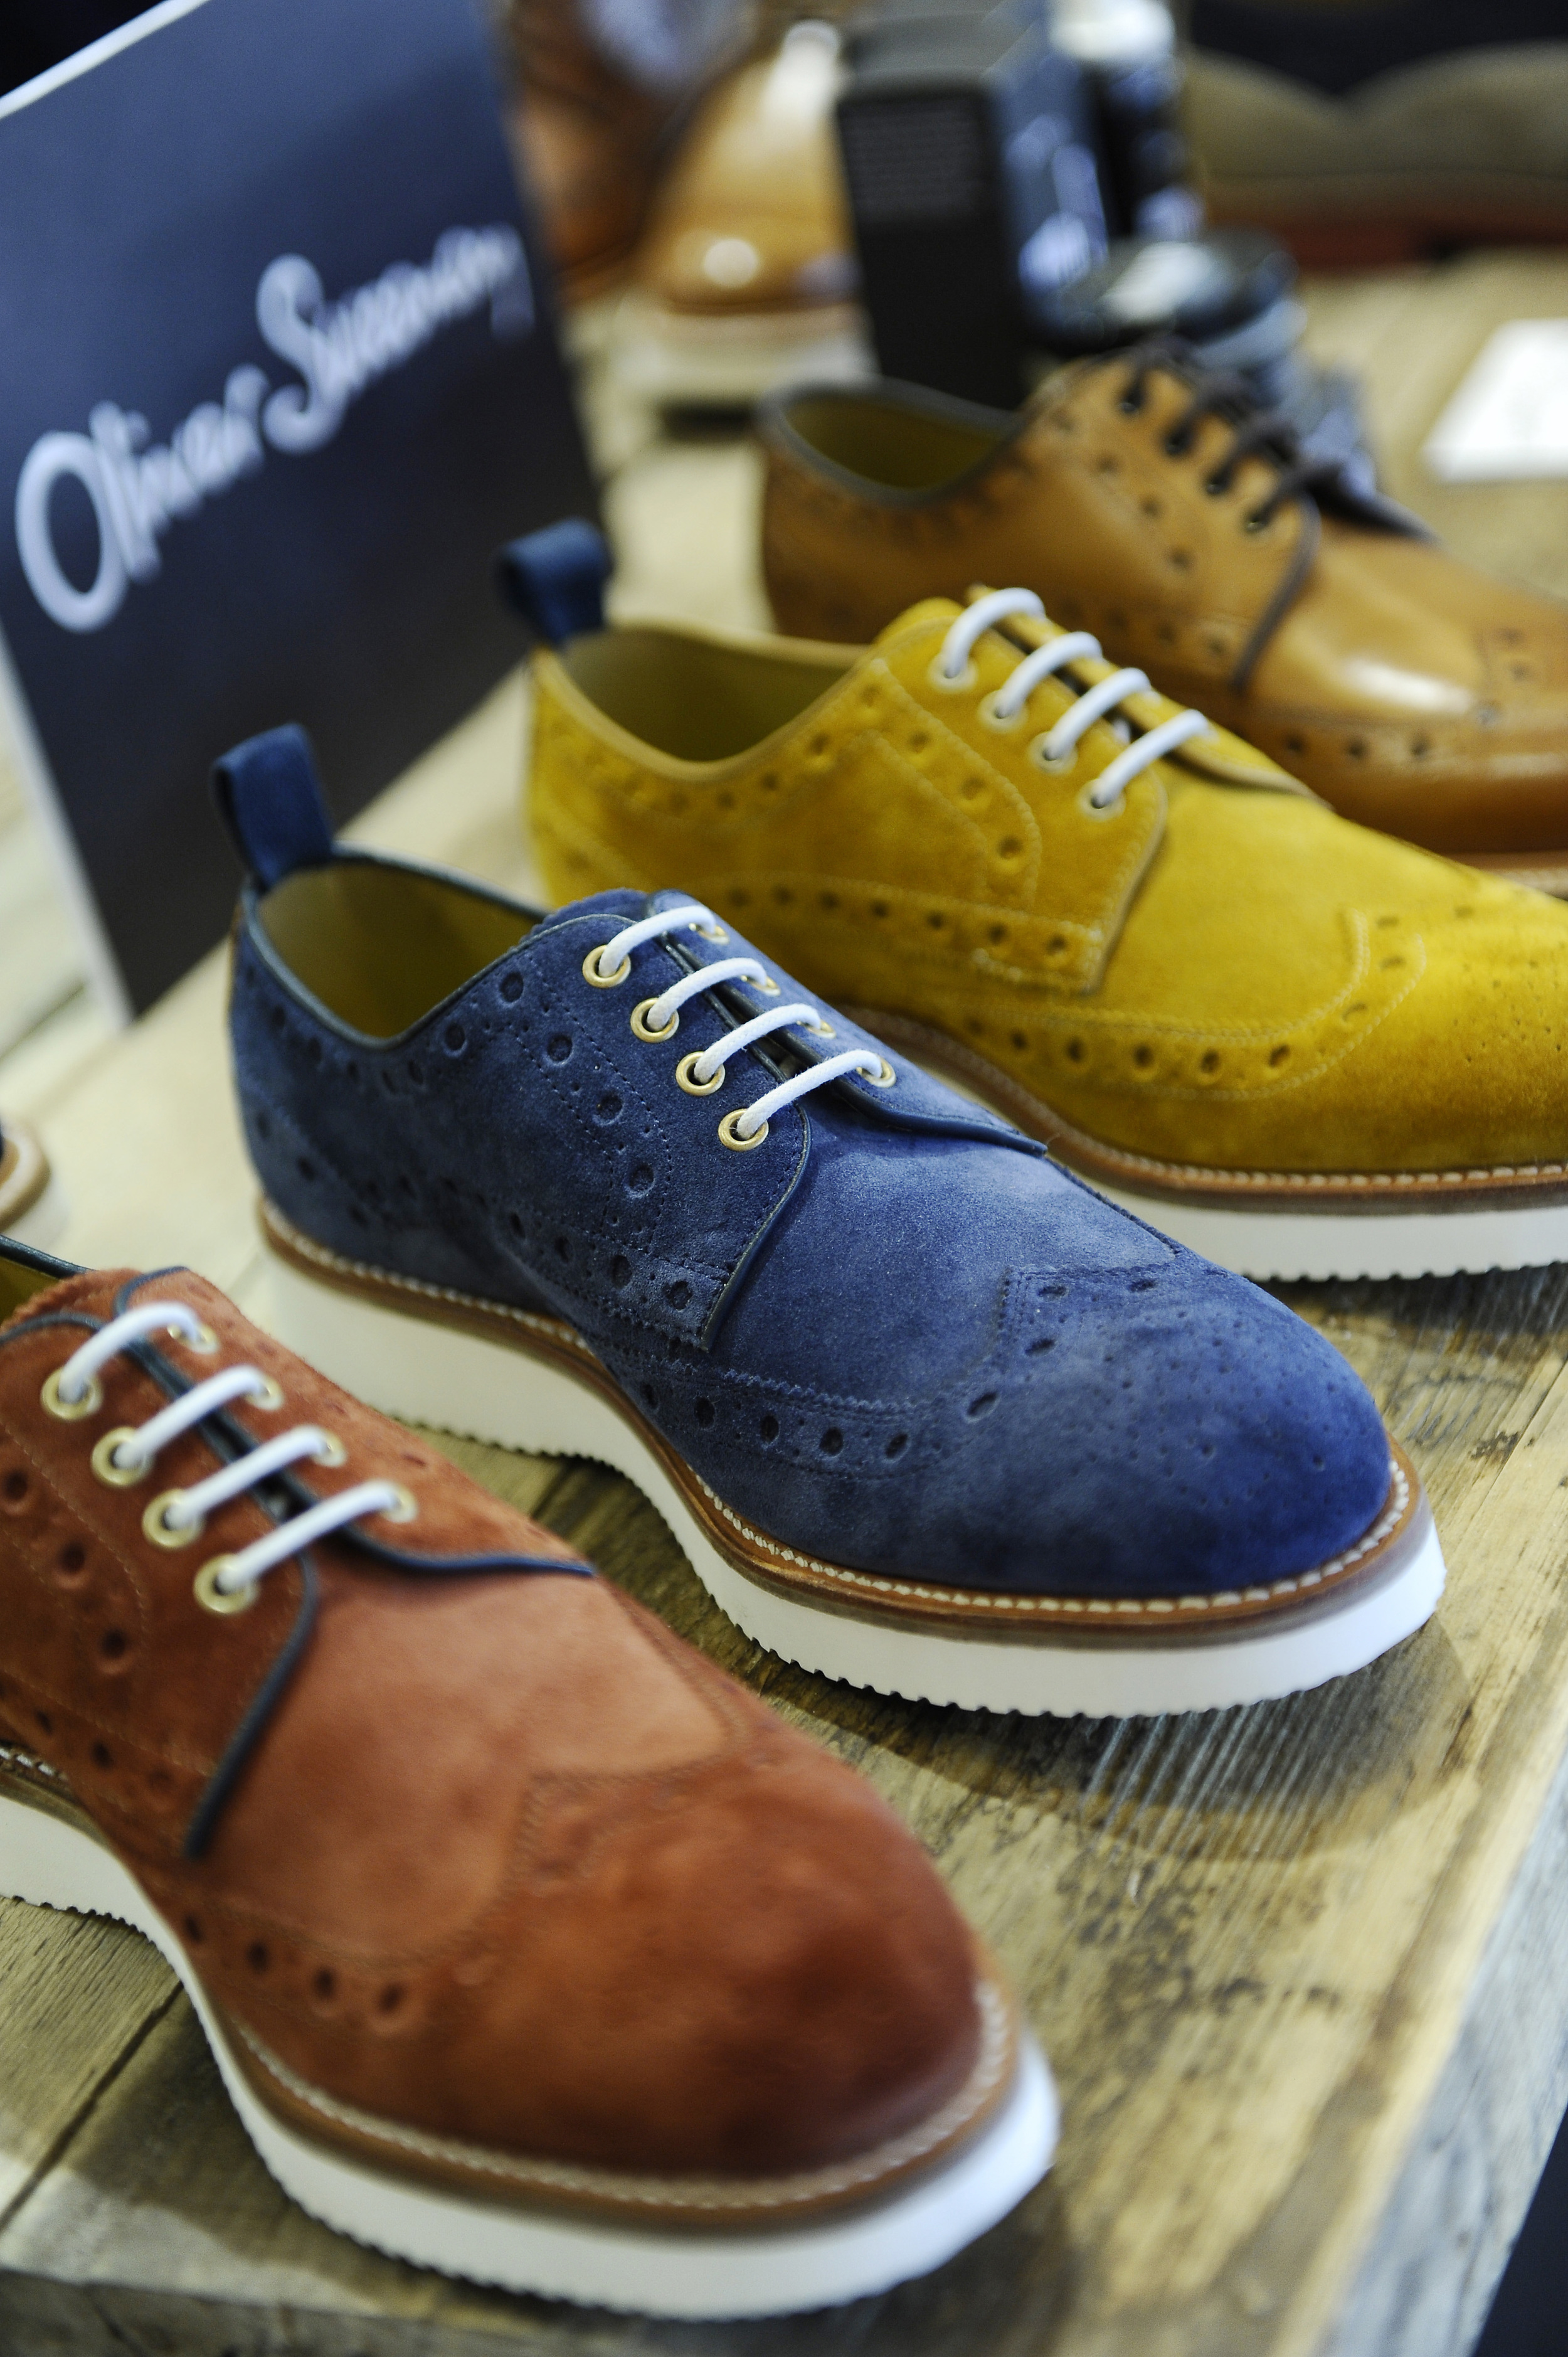 Contemporary derby shoes by OLIVER SWEENEY